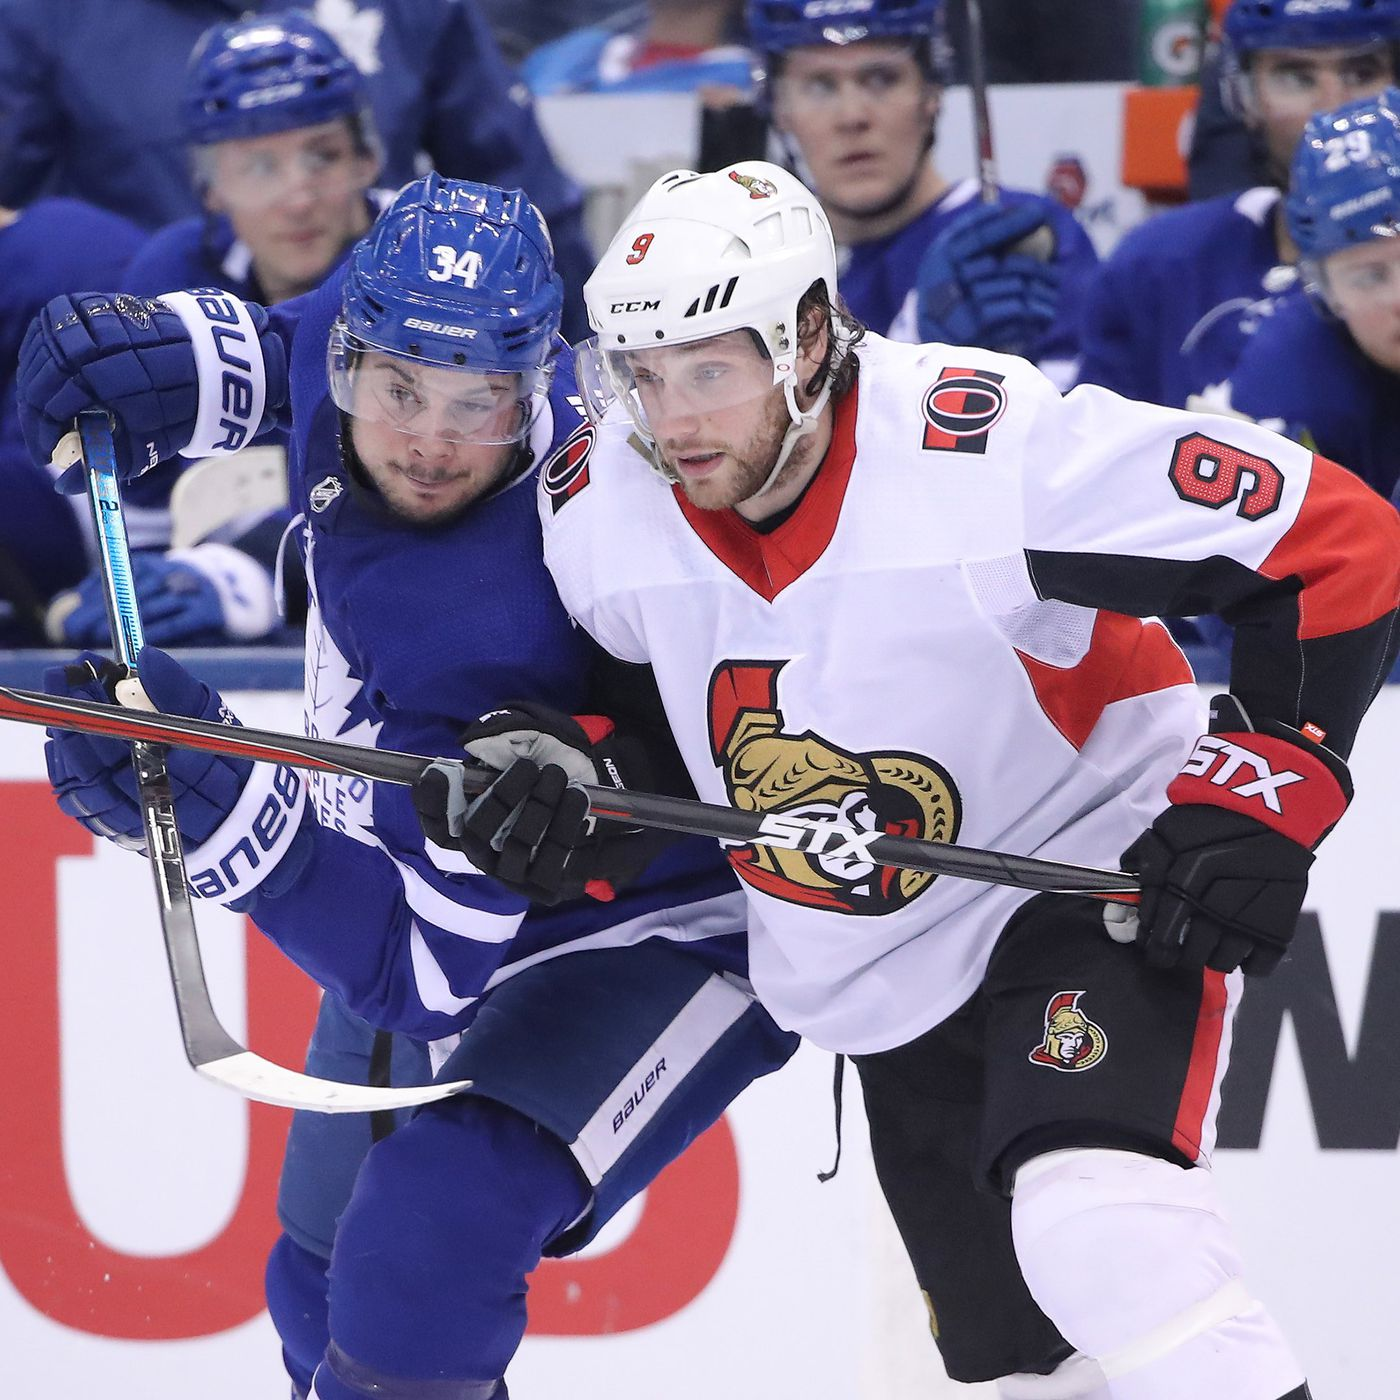 Maple Leafs game preview  the Senators will try to be spoilers tonight - Pension  Plan Puppets 5a6dd2024